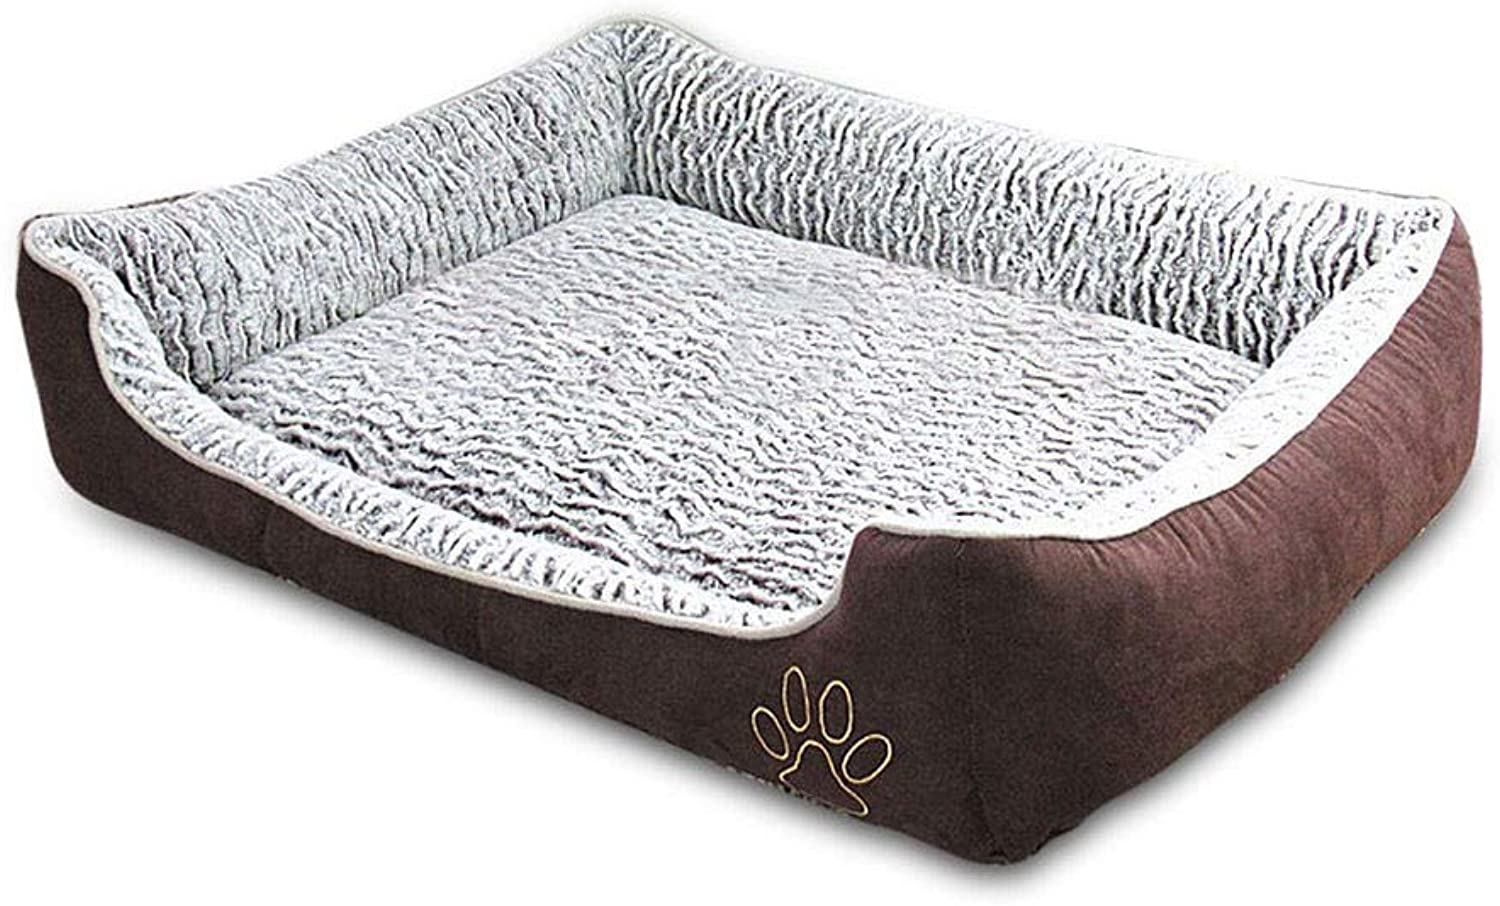 Deluxe Orthopaedic Dog Bed Cushion Pet Warm Basket Removable Zipped Cover Washable Waterproof For Large Medium Small Dogs Puppies In Summer Cold Winter